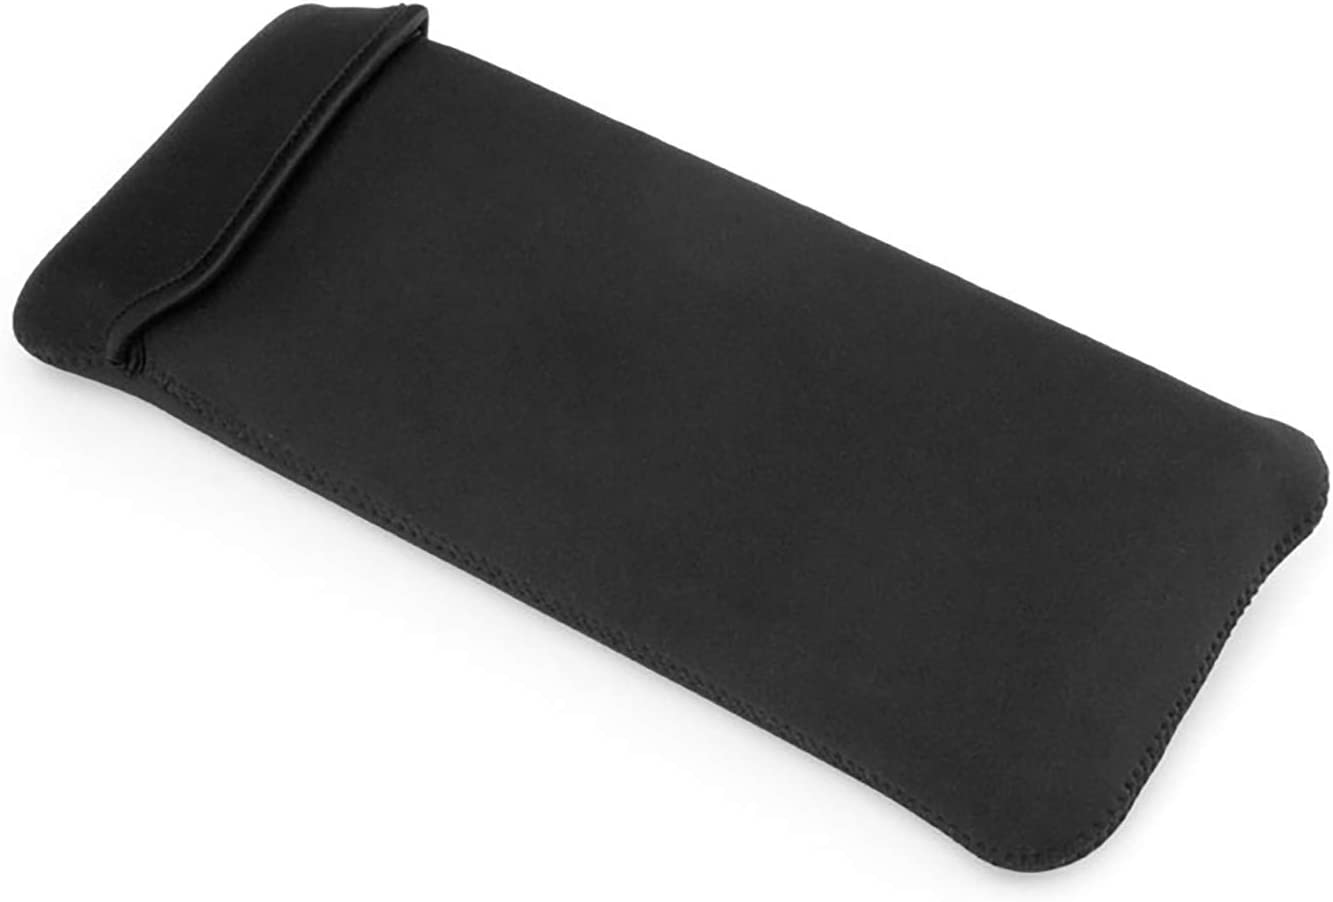 """Grifiti Chiton Fat 12 6.5"""" x 13.5"""" Neoprene Keyboard Sleeve 10keyless Mechanical and 11-13 Inch Keyboards with Mouse Pocket"""